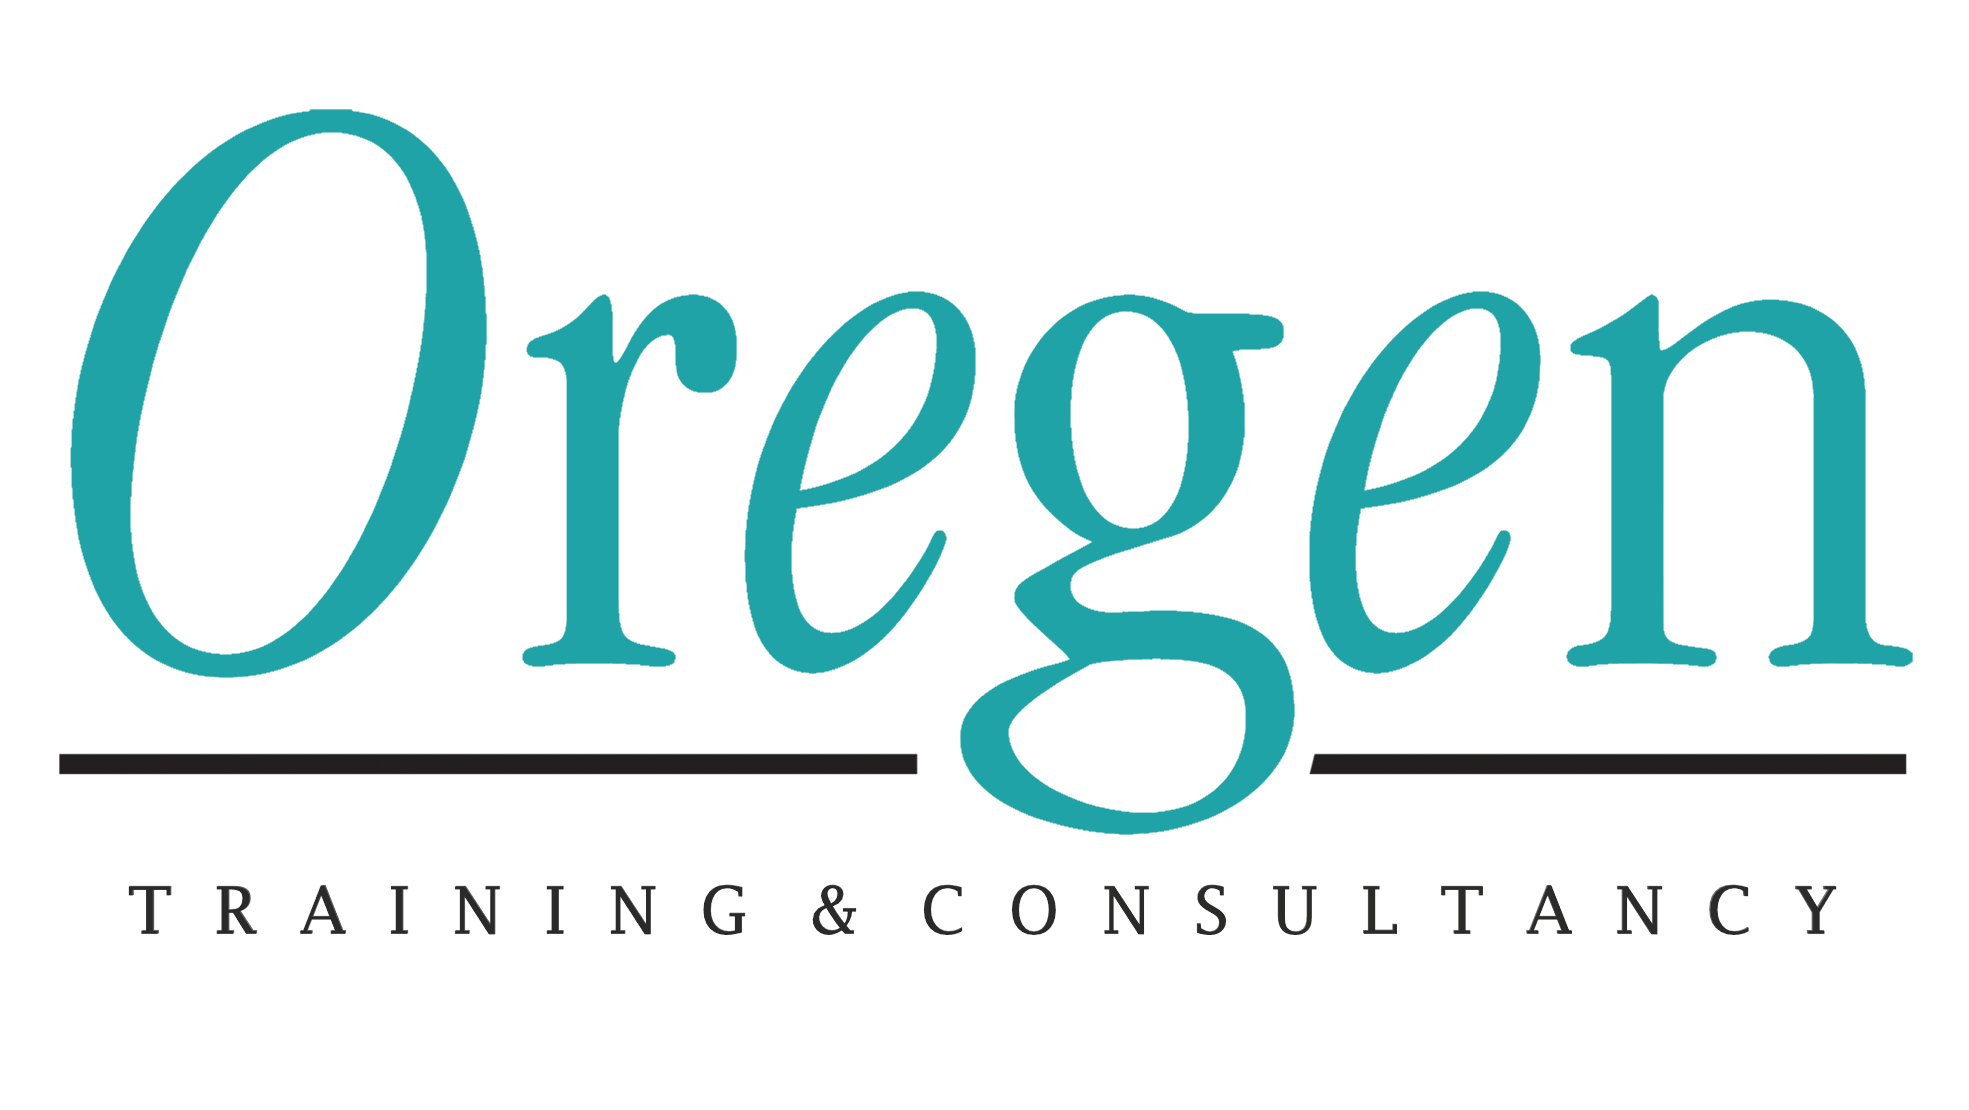 Oregen Computer Training